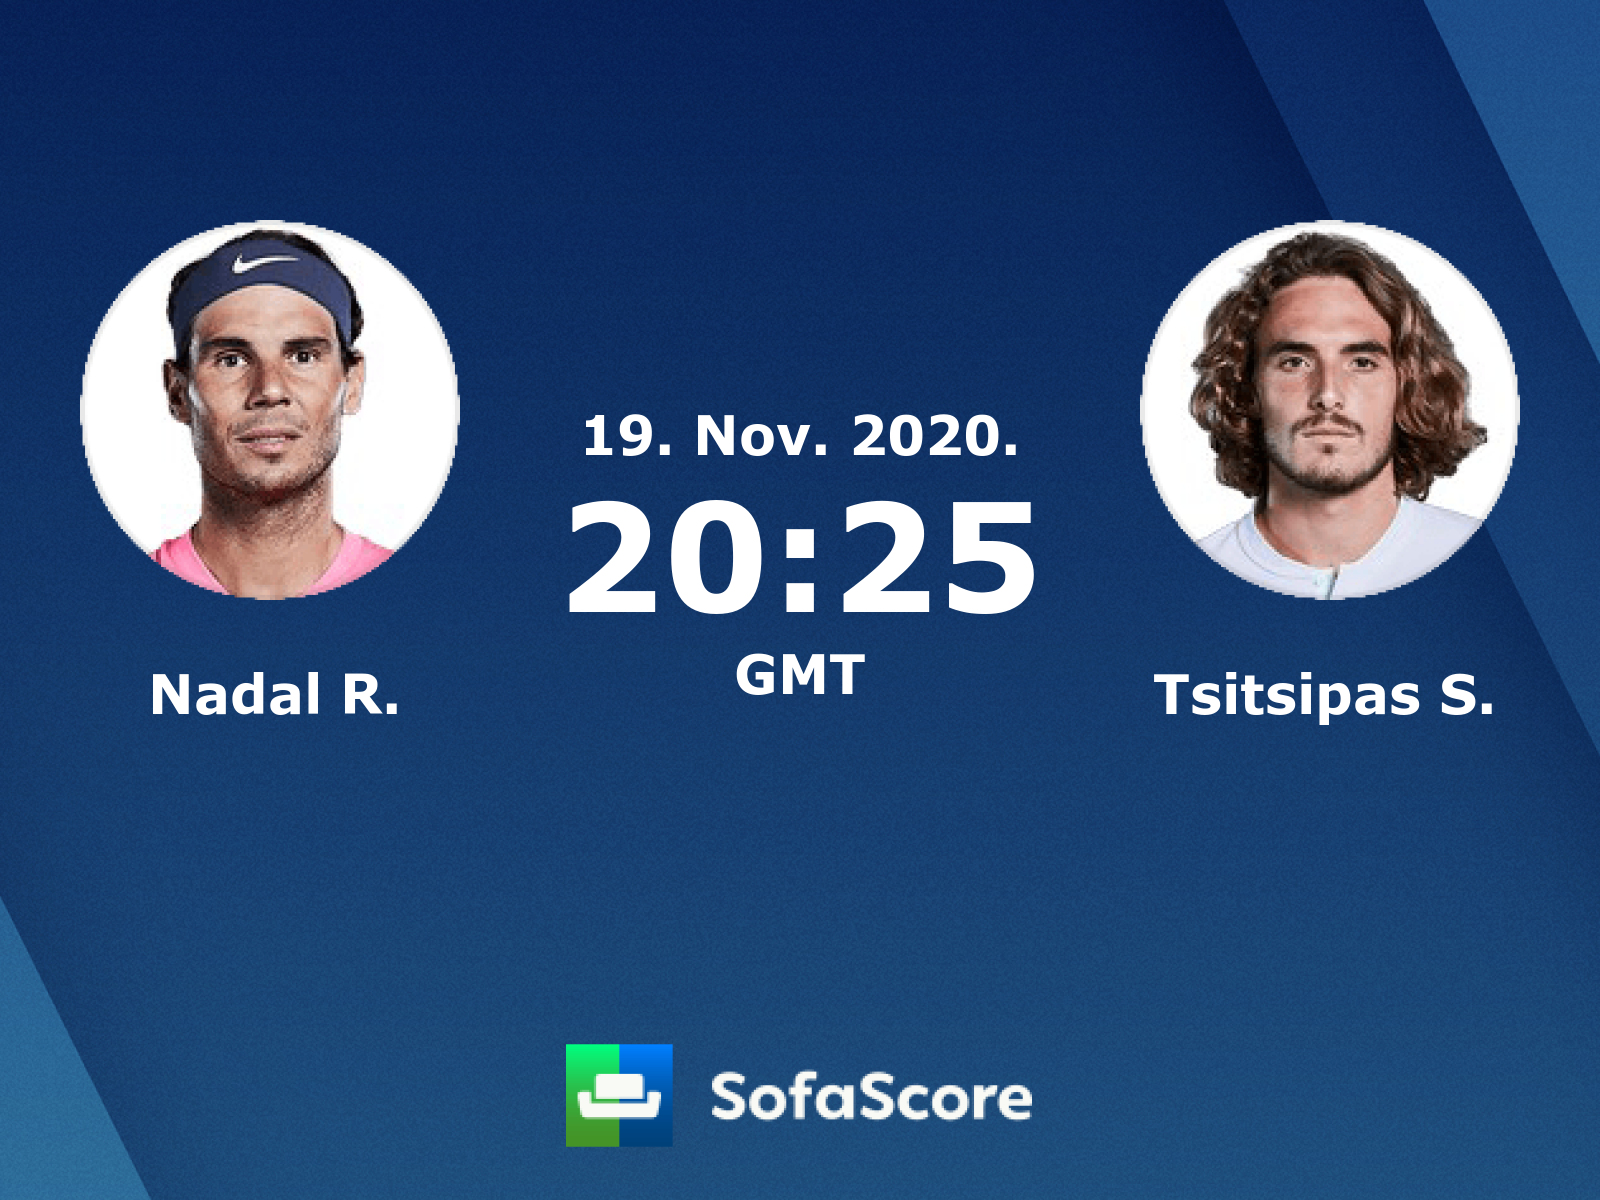 Nadal R. Tsitsipas S. live score, video stream and H2H results - SofaScore